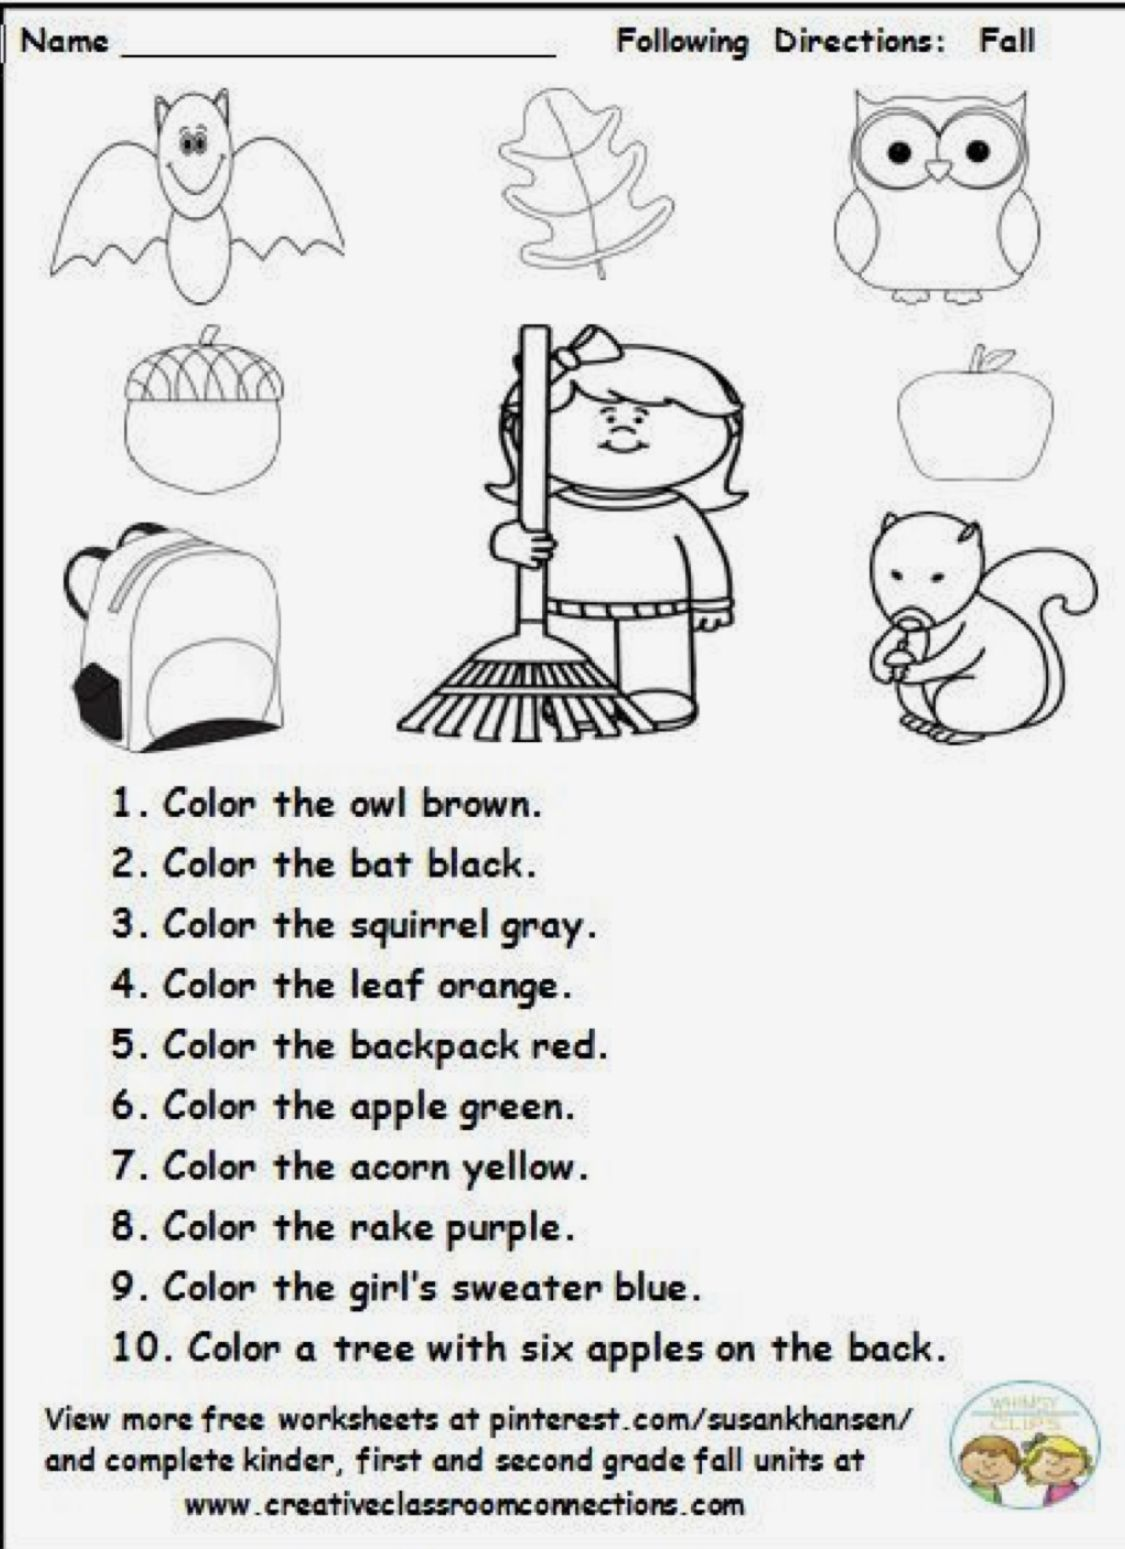 medium resolution of Fall coloring   Following directions activities